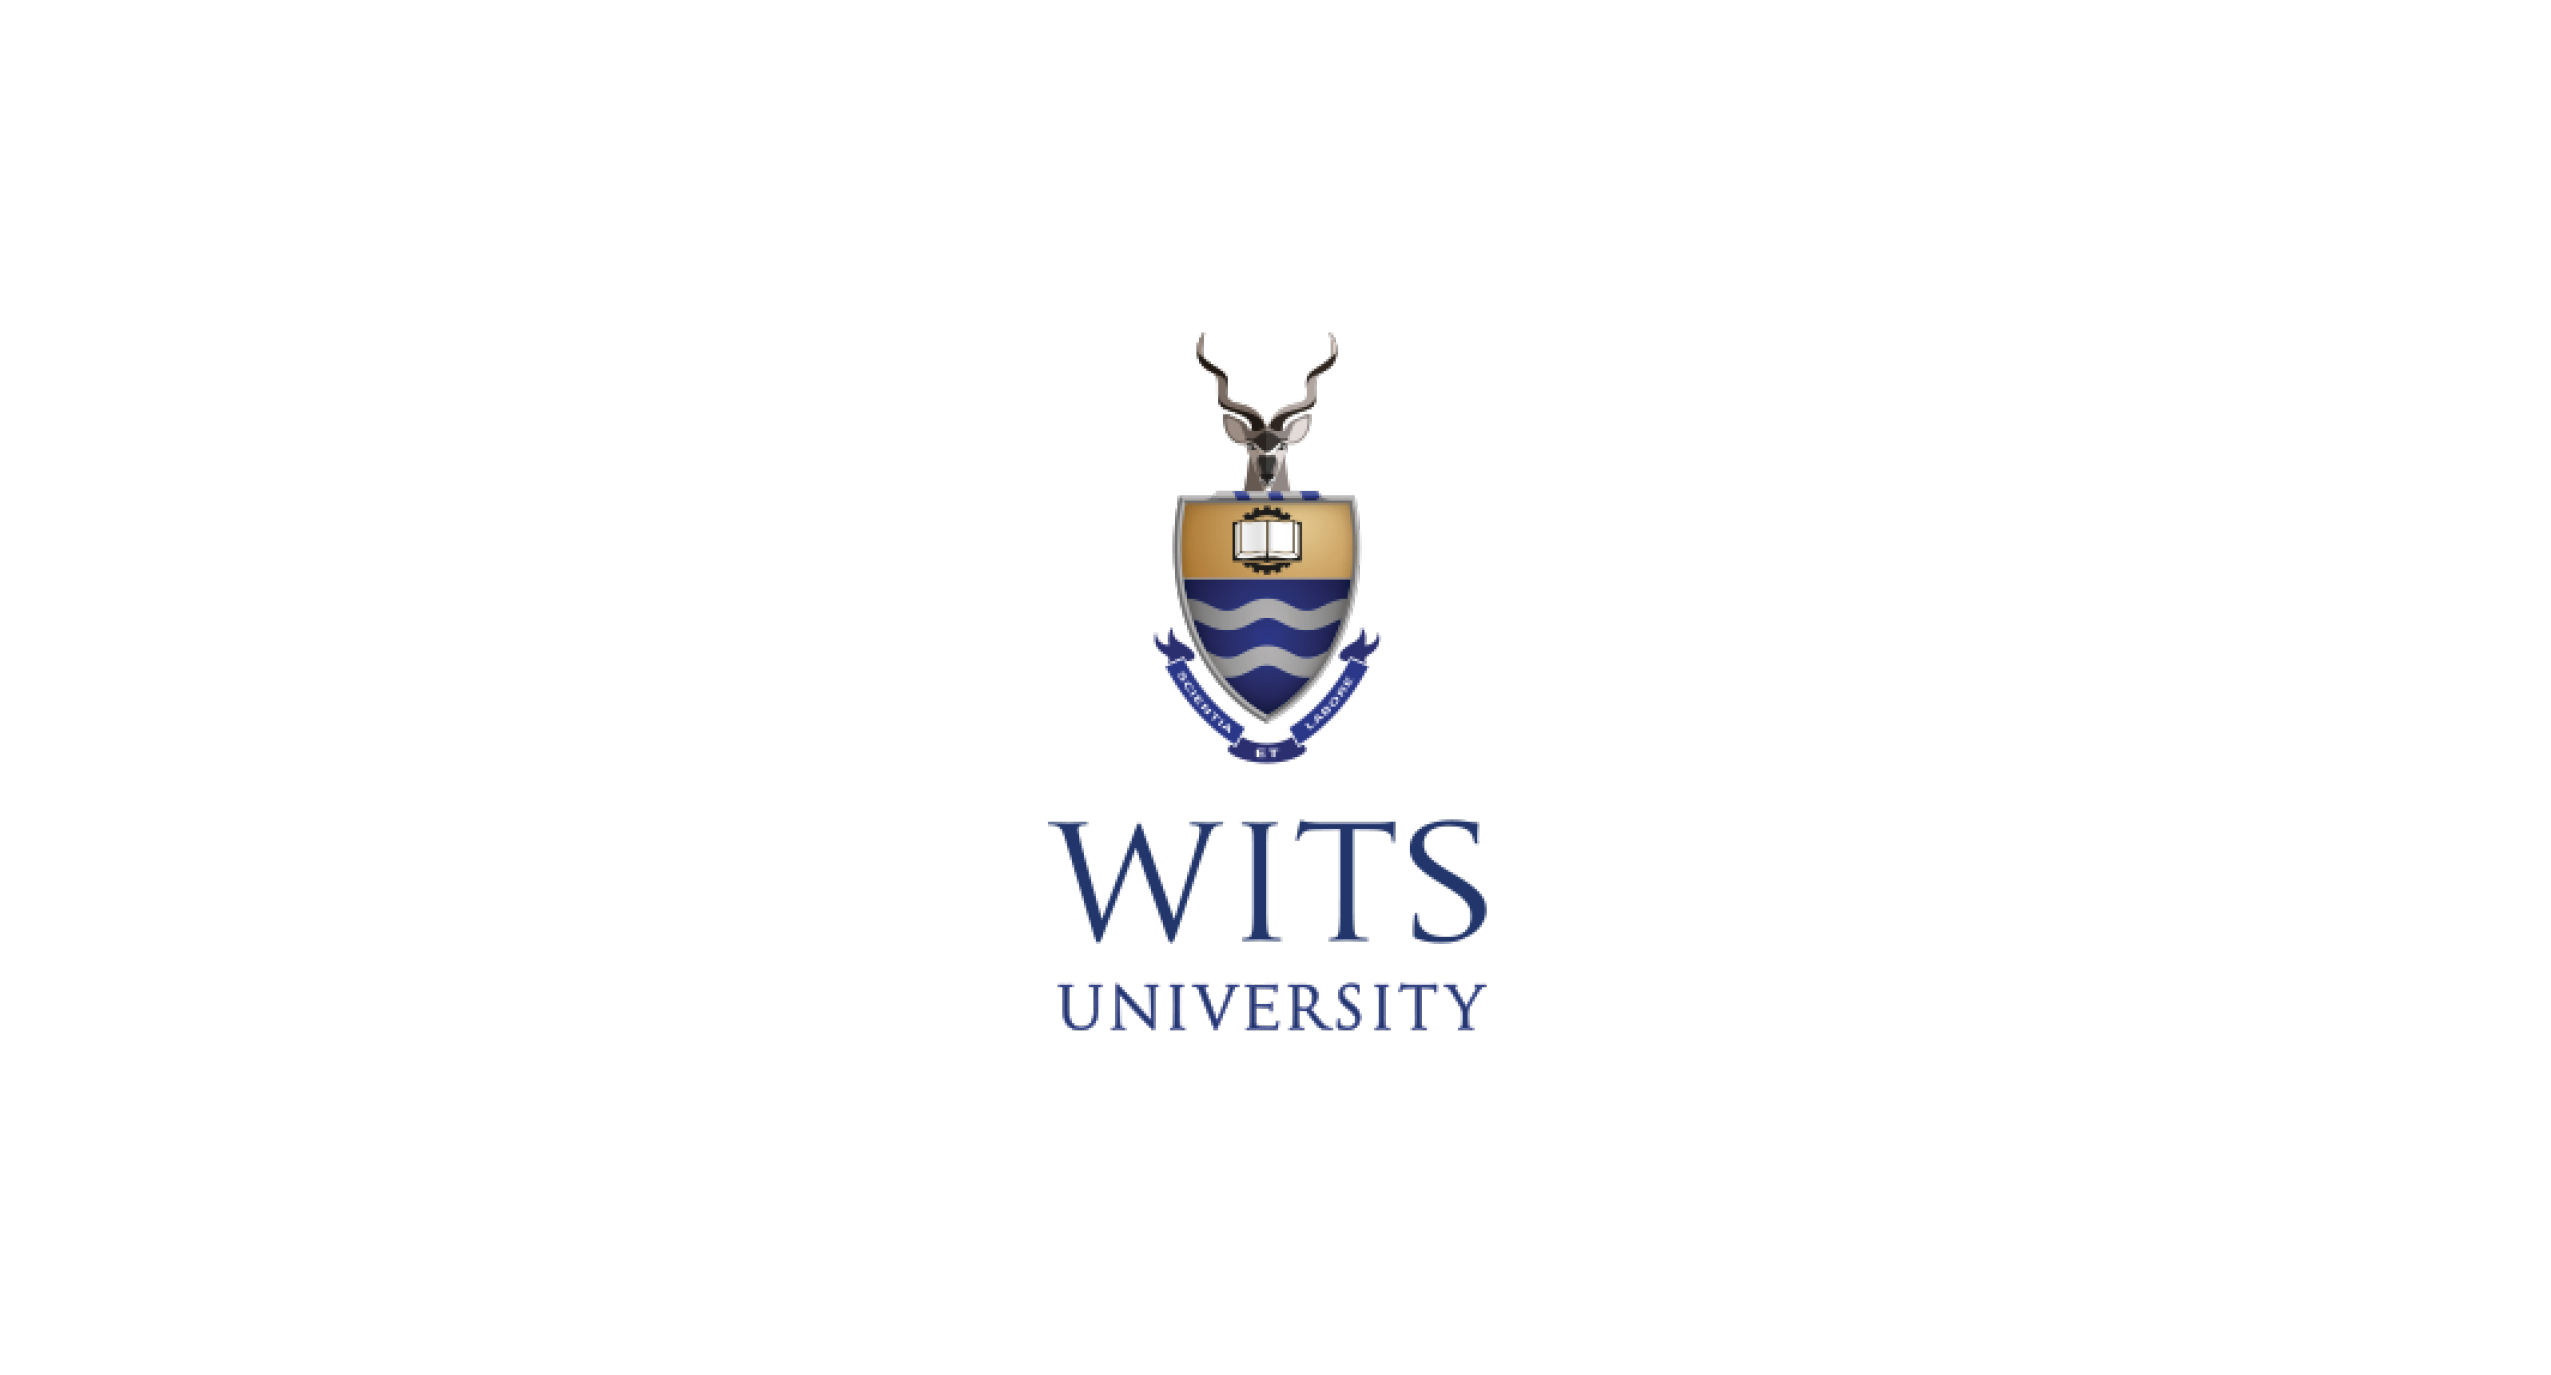 University of the Witwatersand Wits logo